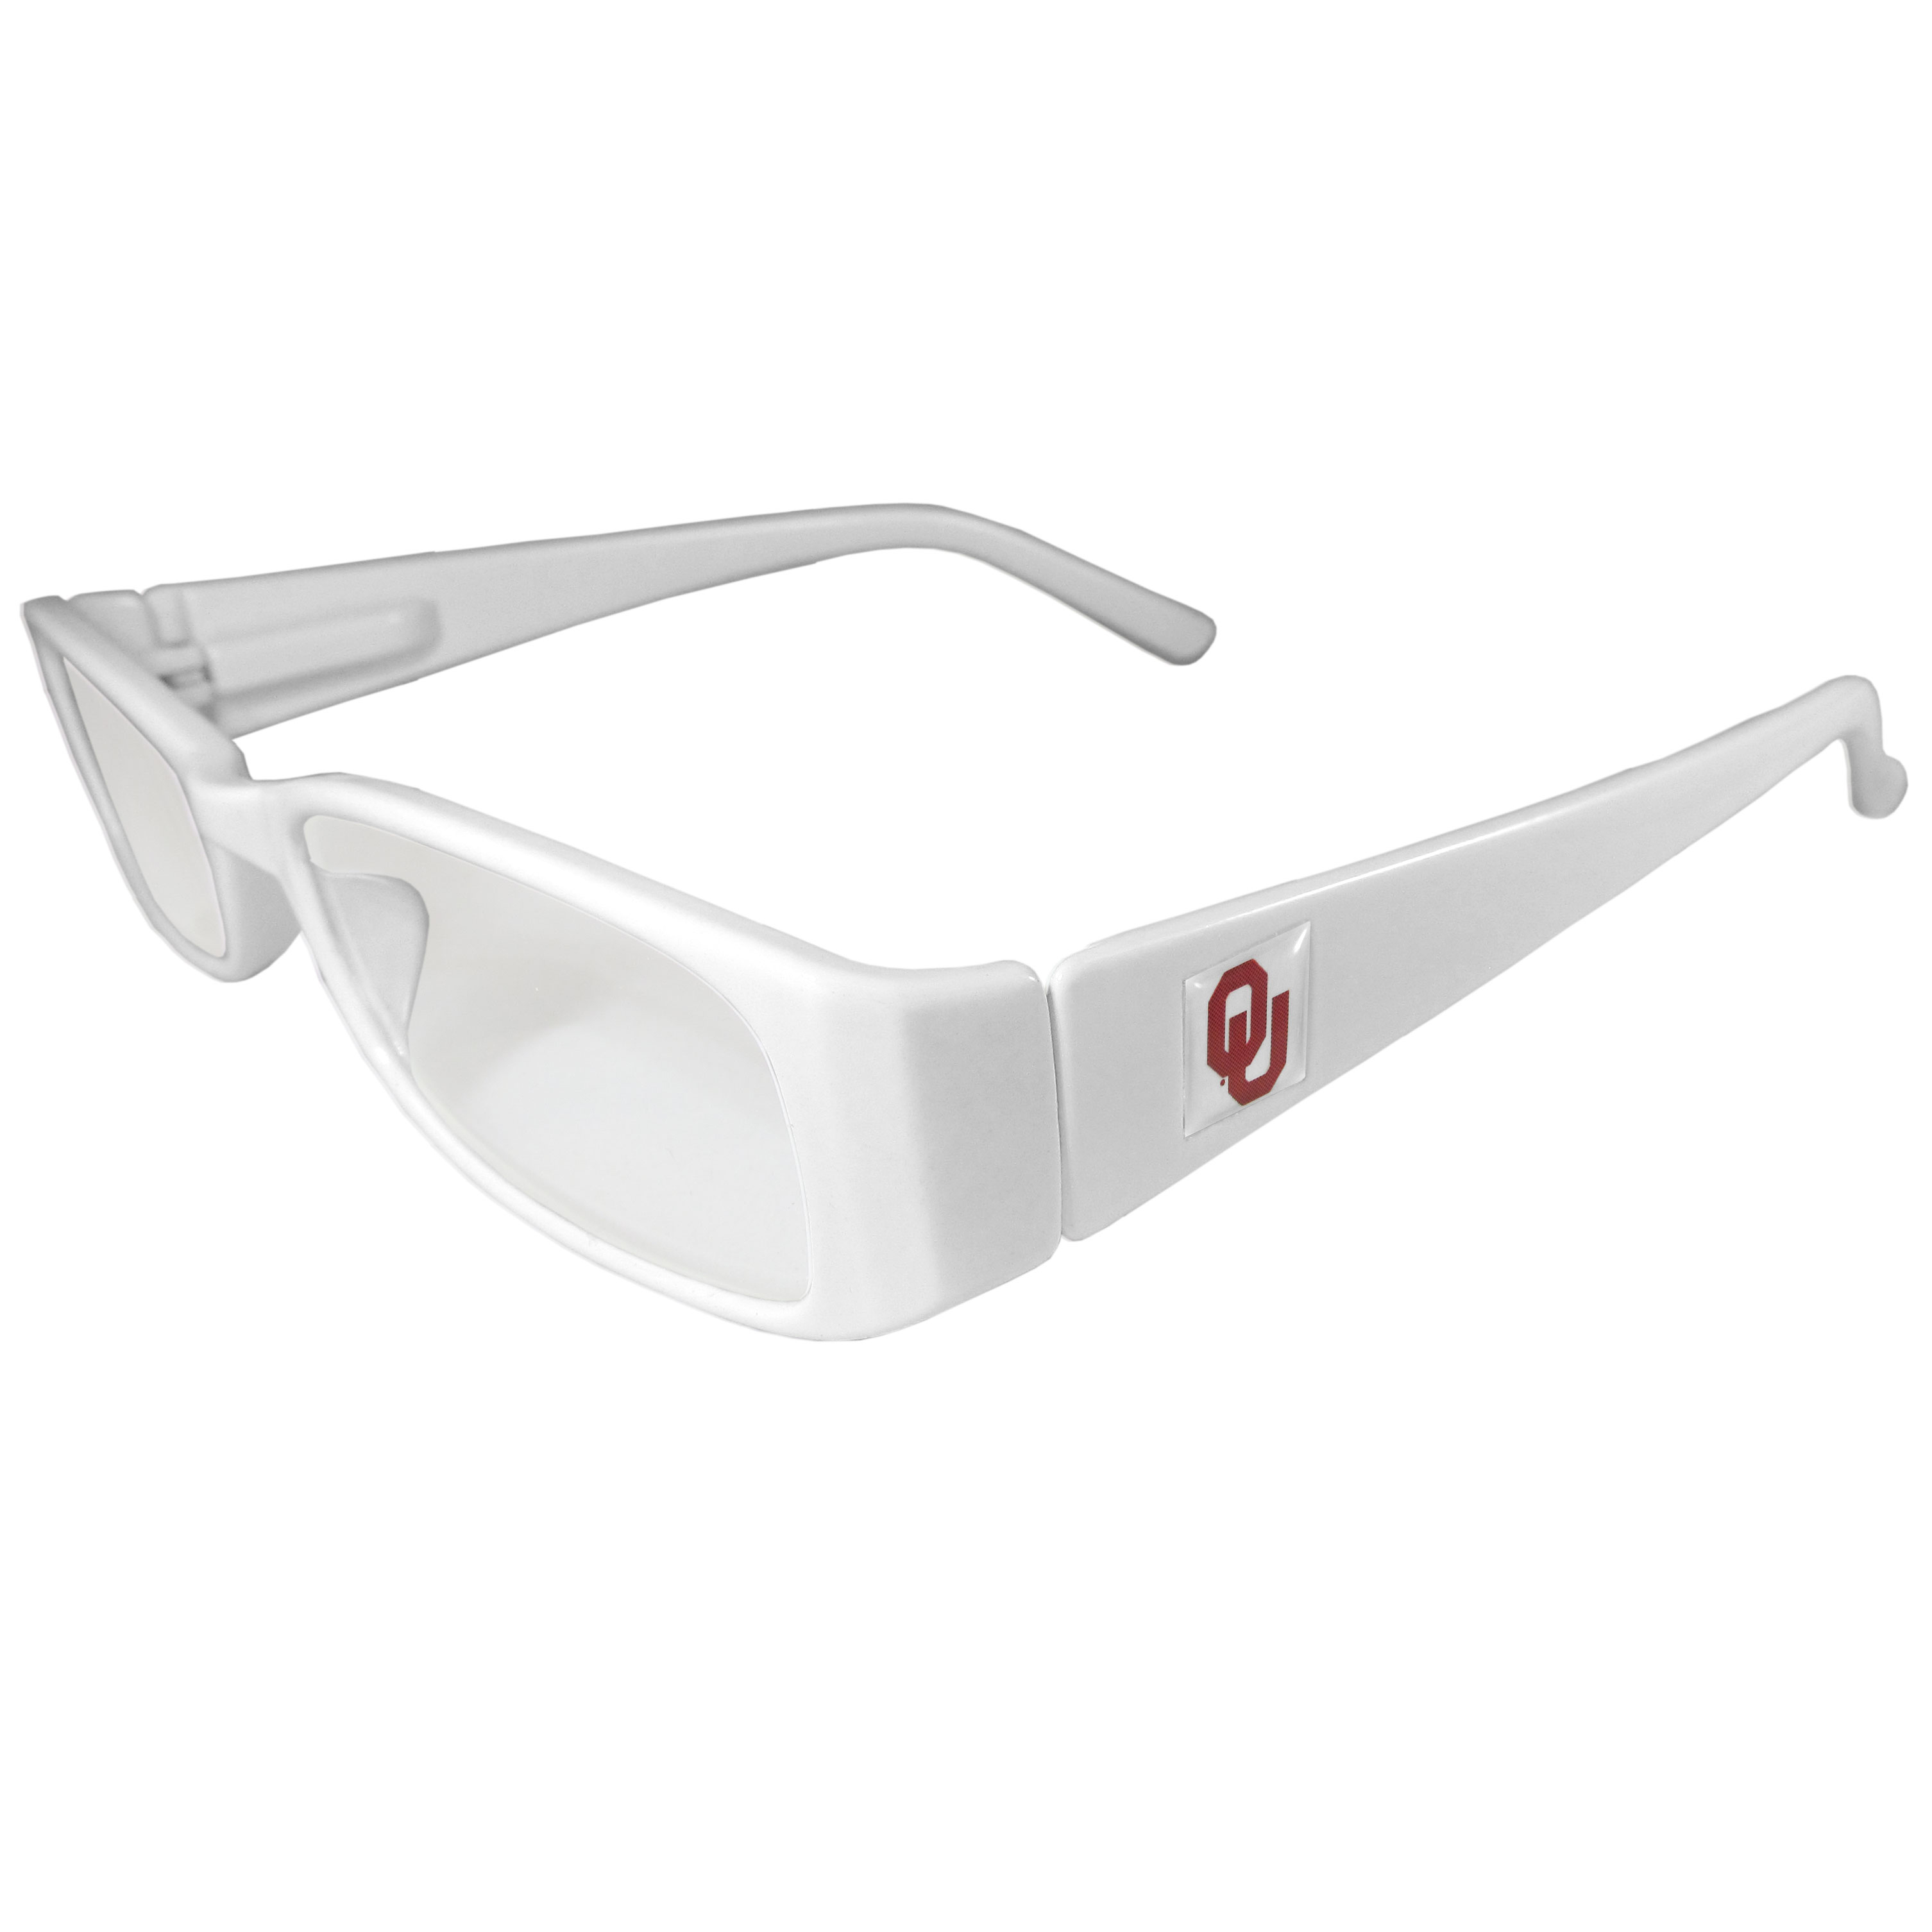 Oklahoma Sooners Reading Glasses +1.25 - Our Oklahoma Sooners reading glasses are 5.25 inches wide and feature the team logo on each arm. Magnification Power 1.25